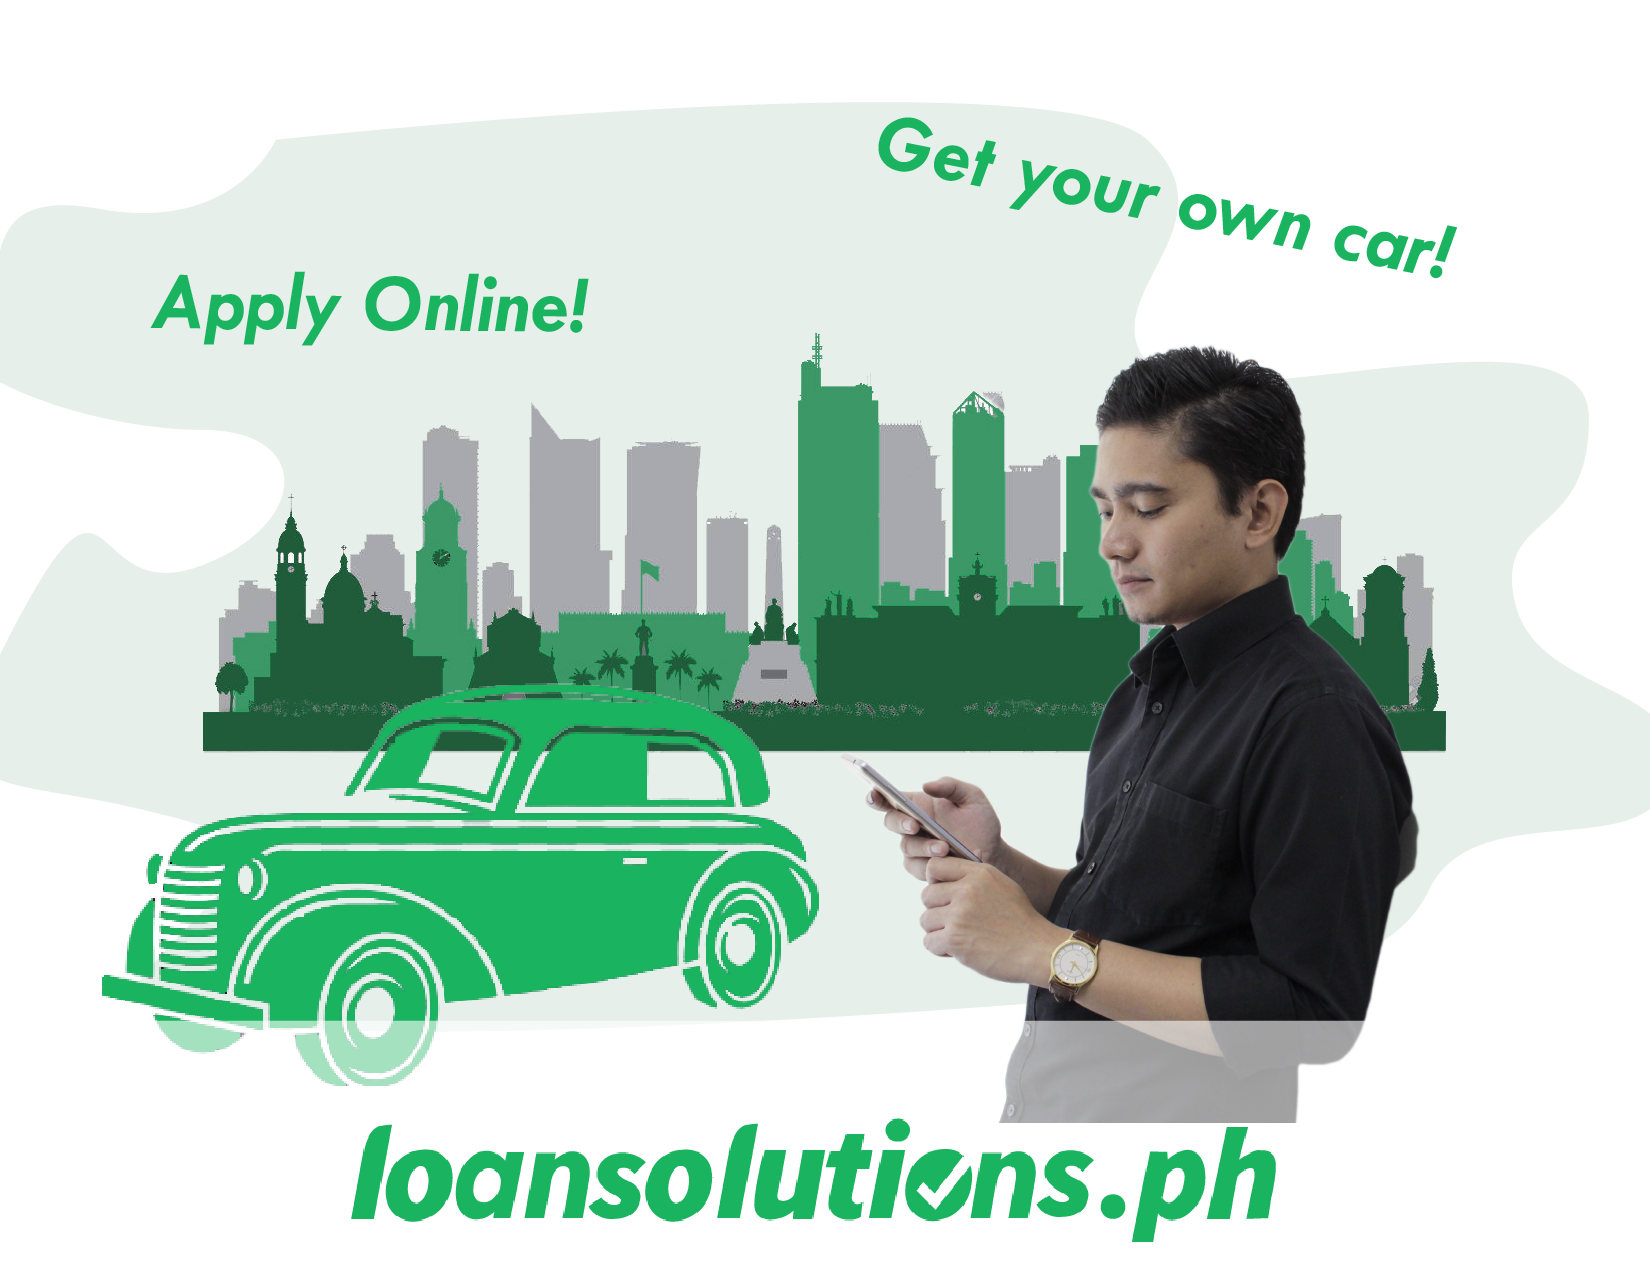 Earning P25k Or Higher Check If You D Qualify For A Personal Loan Via Loansolutions Makeithappen Personal Loans Collateral Loans Business Loans